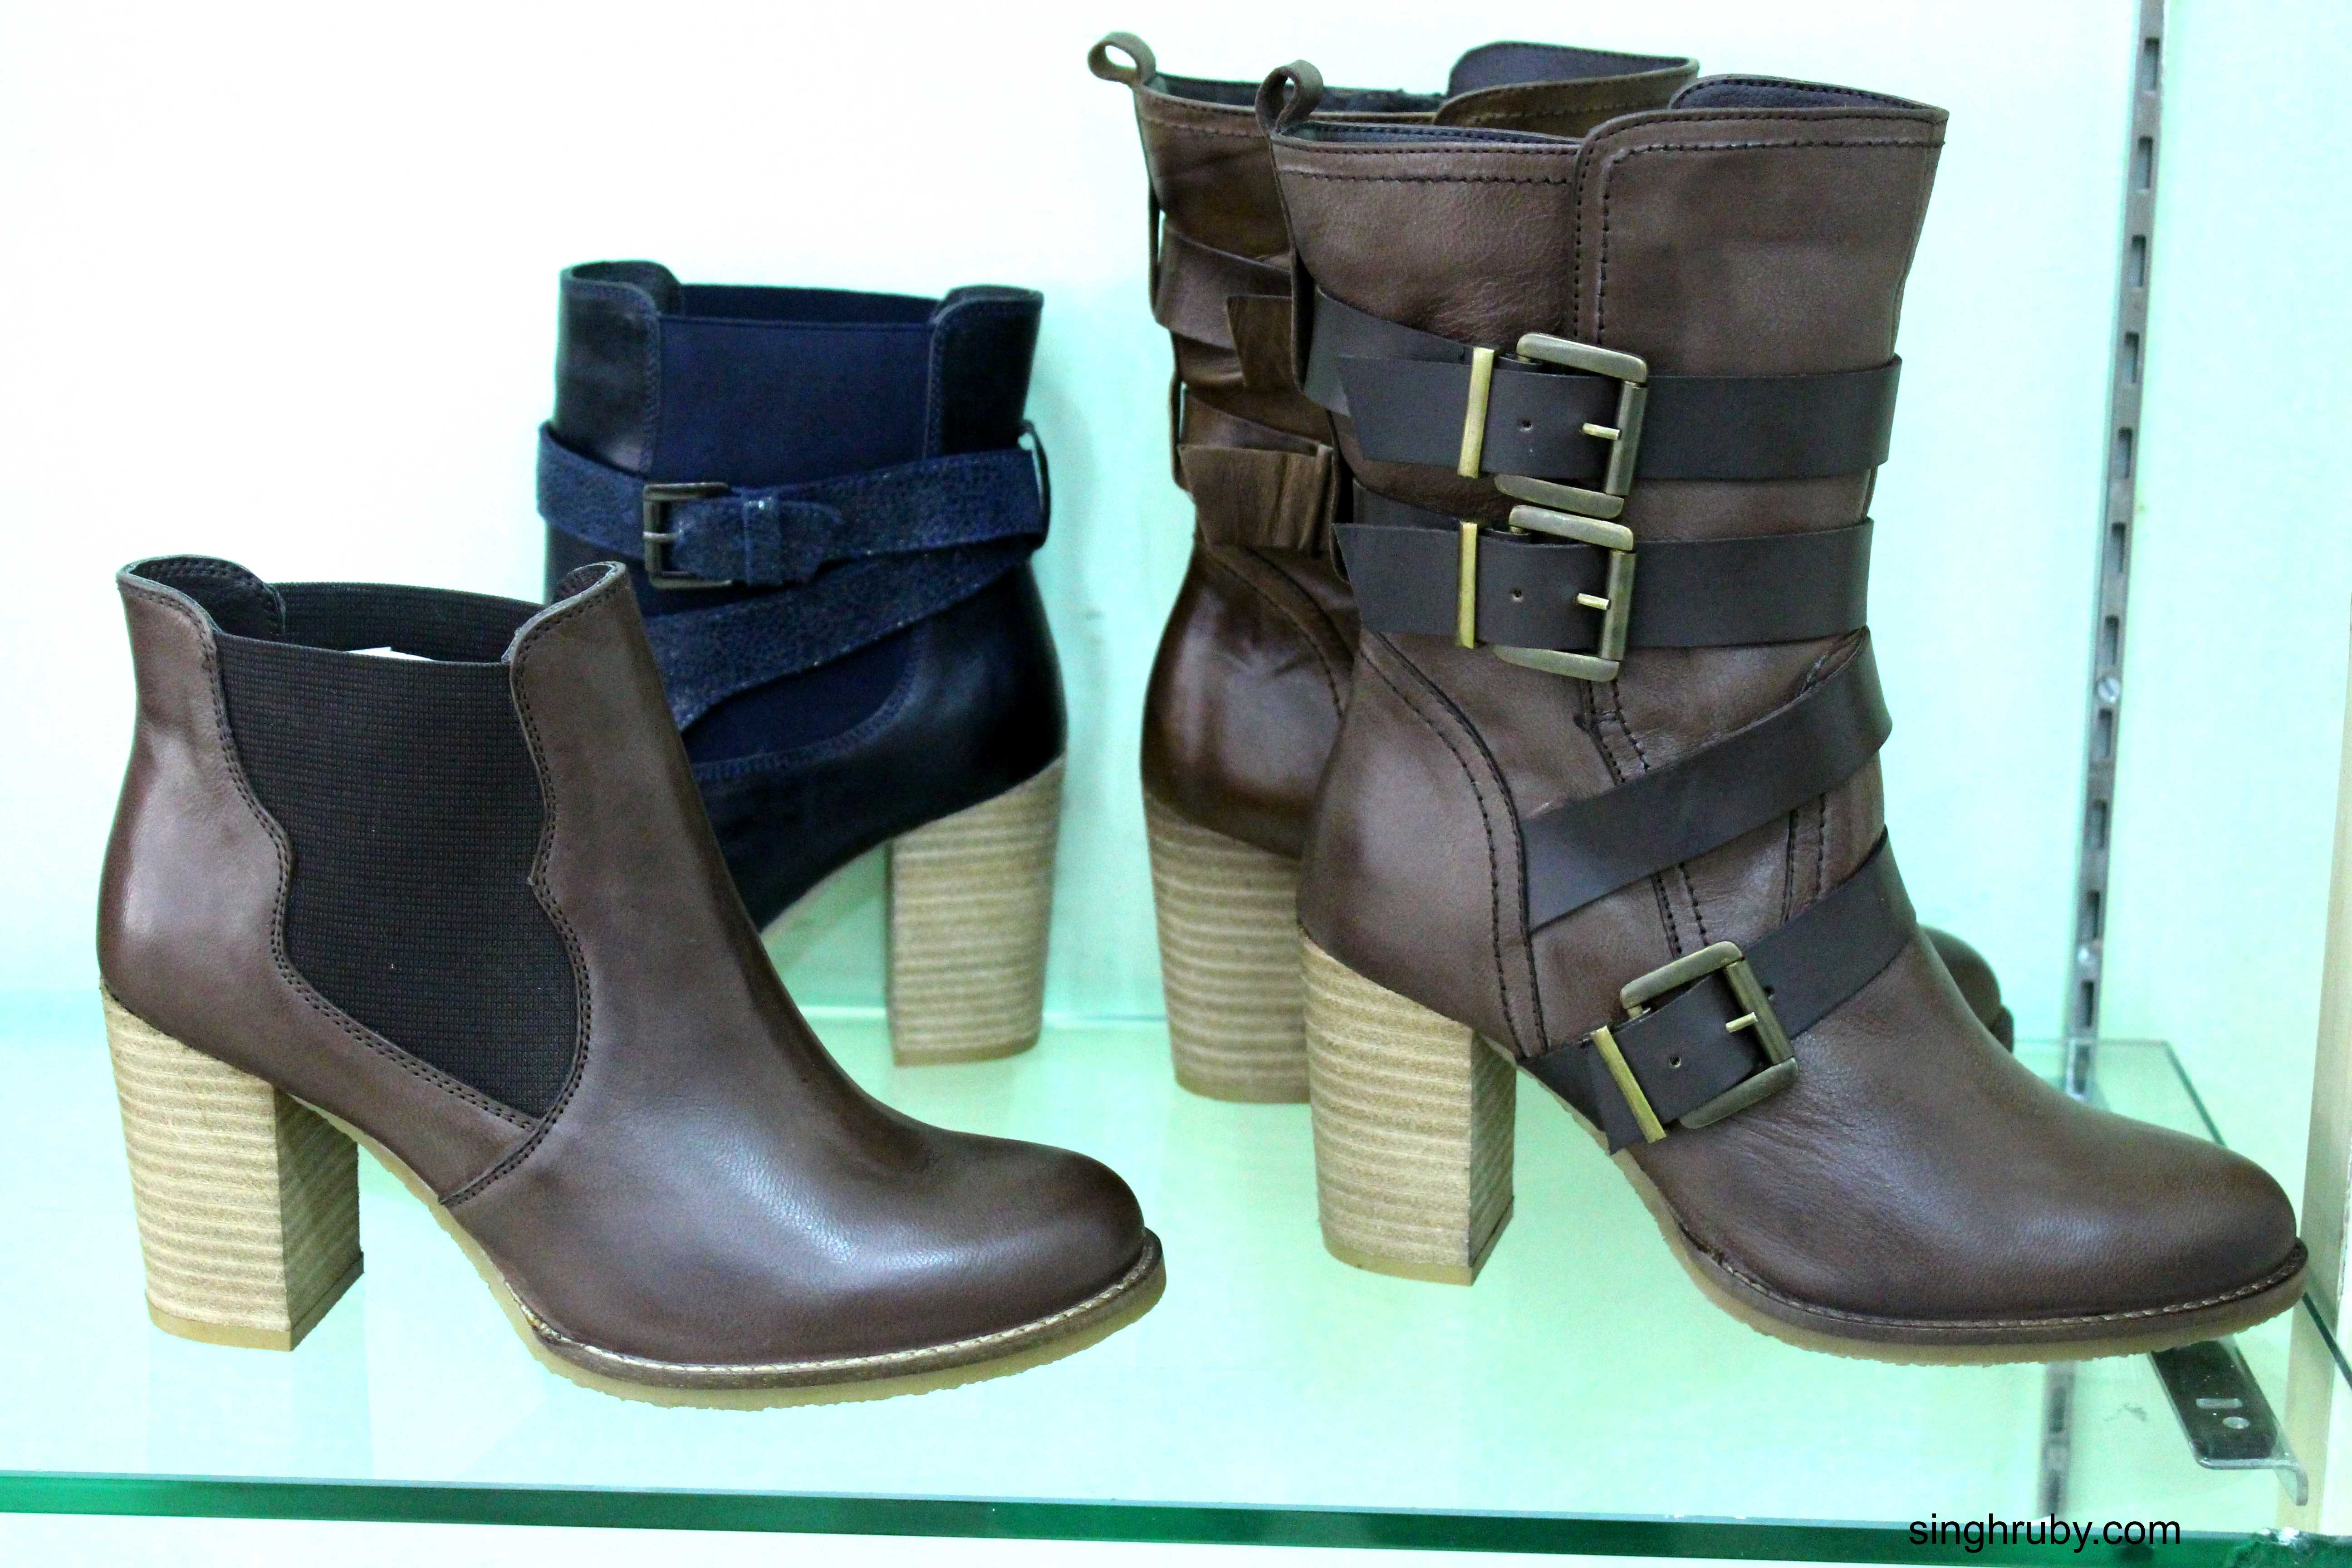 You can spot all varieties of boots here.